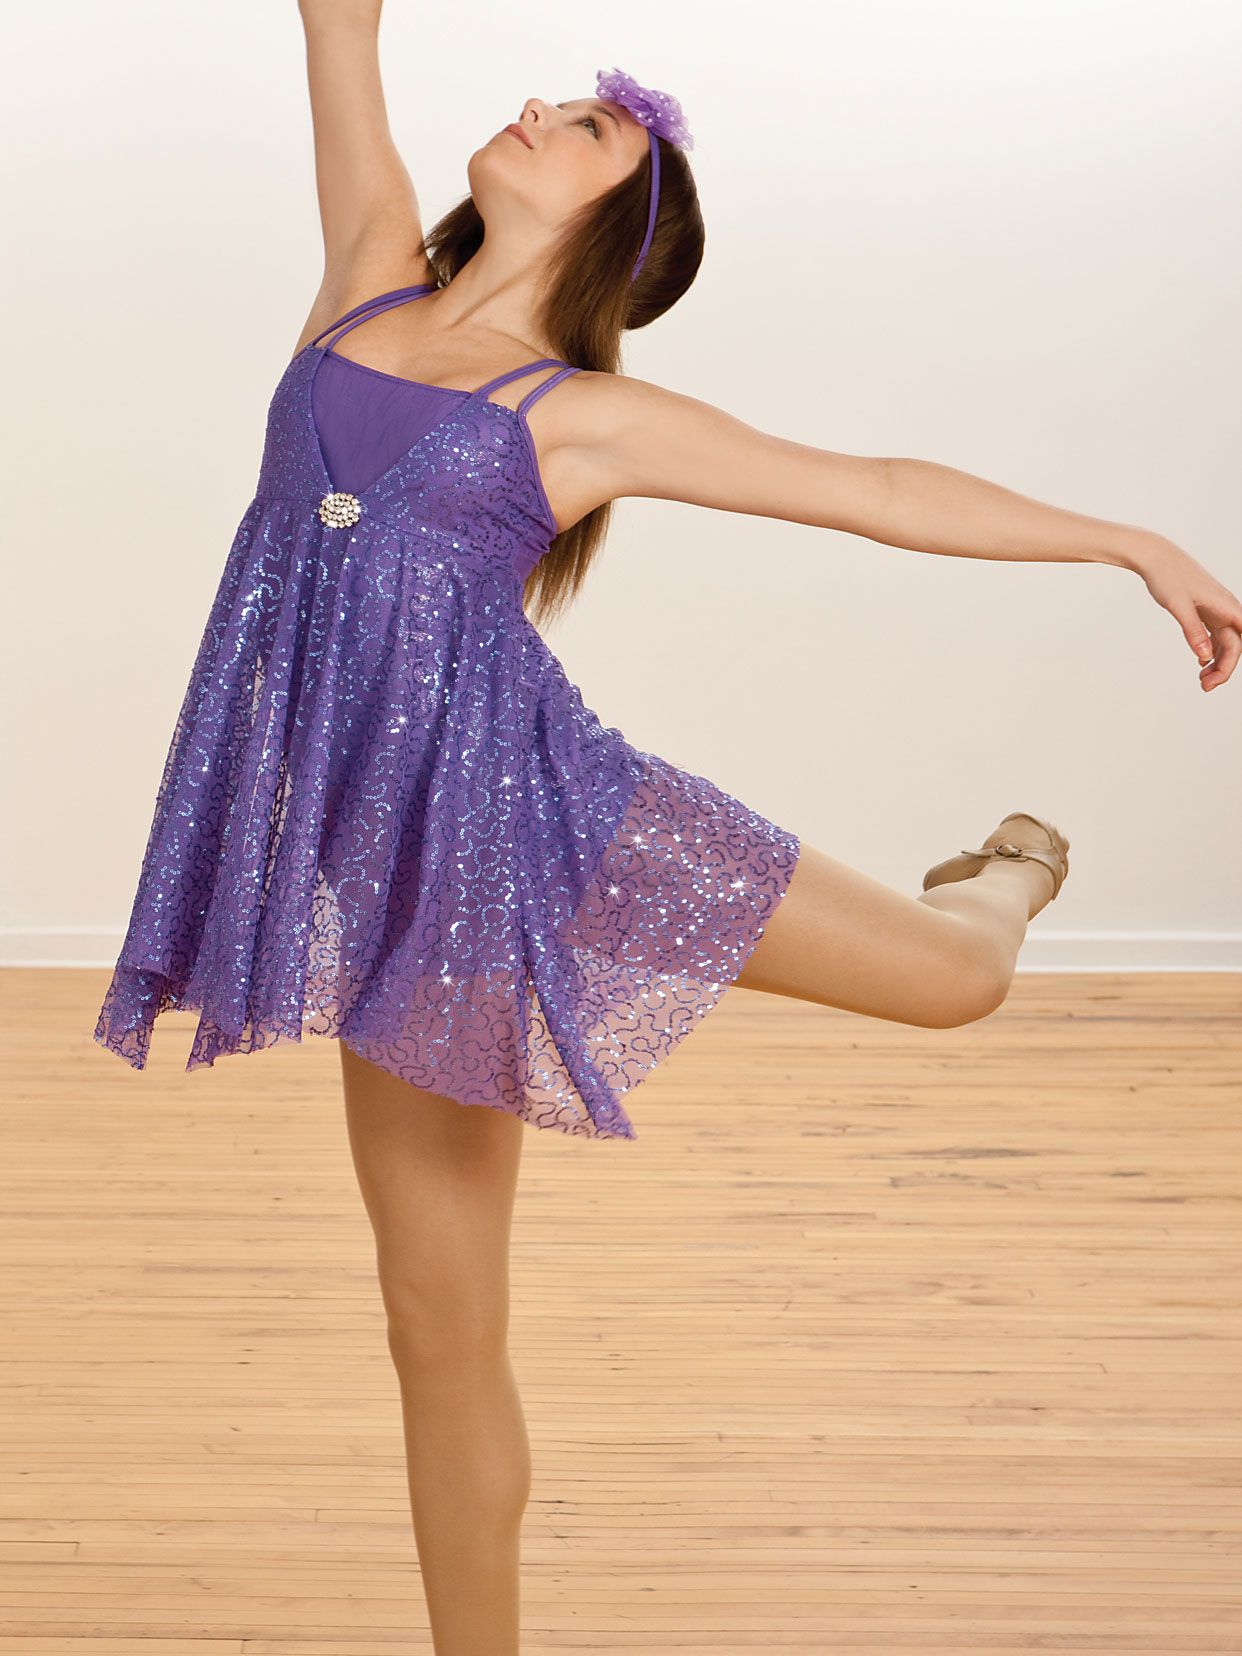 Glitter in the Air Revolution Dancewear Dance outfits